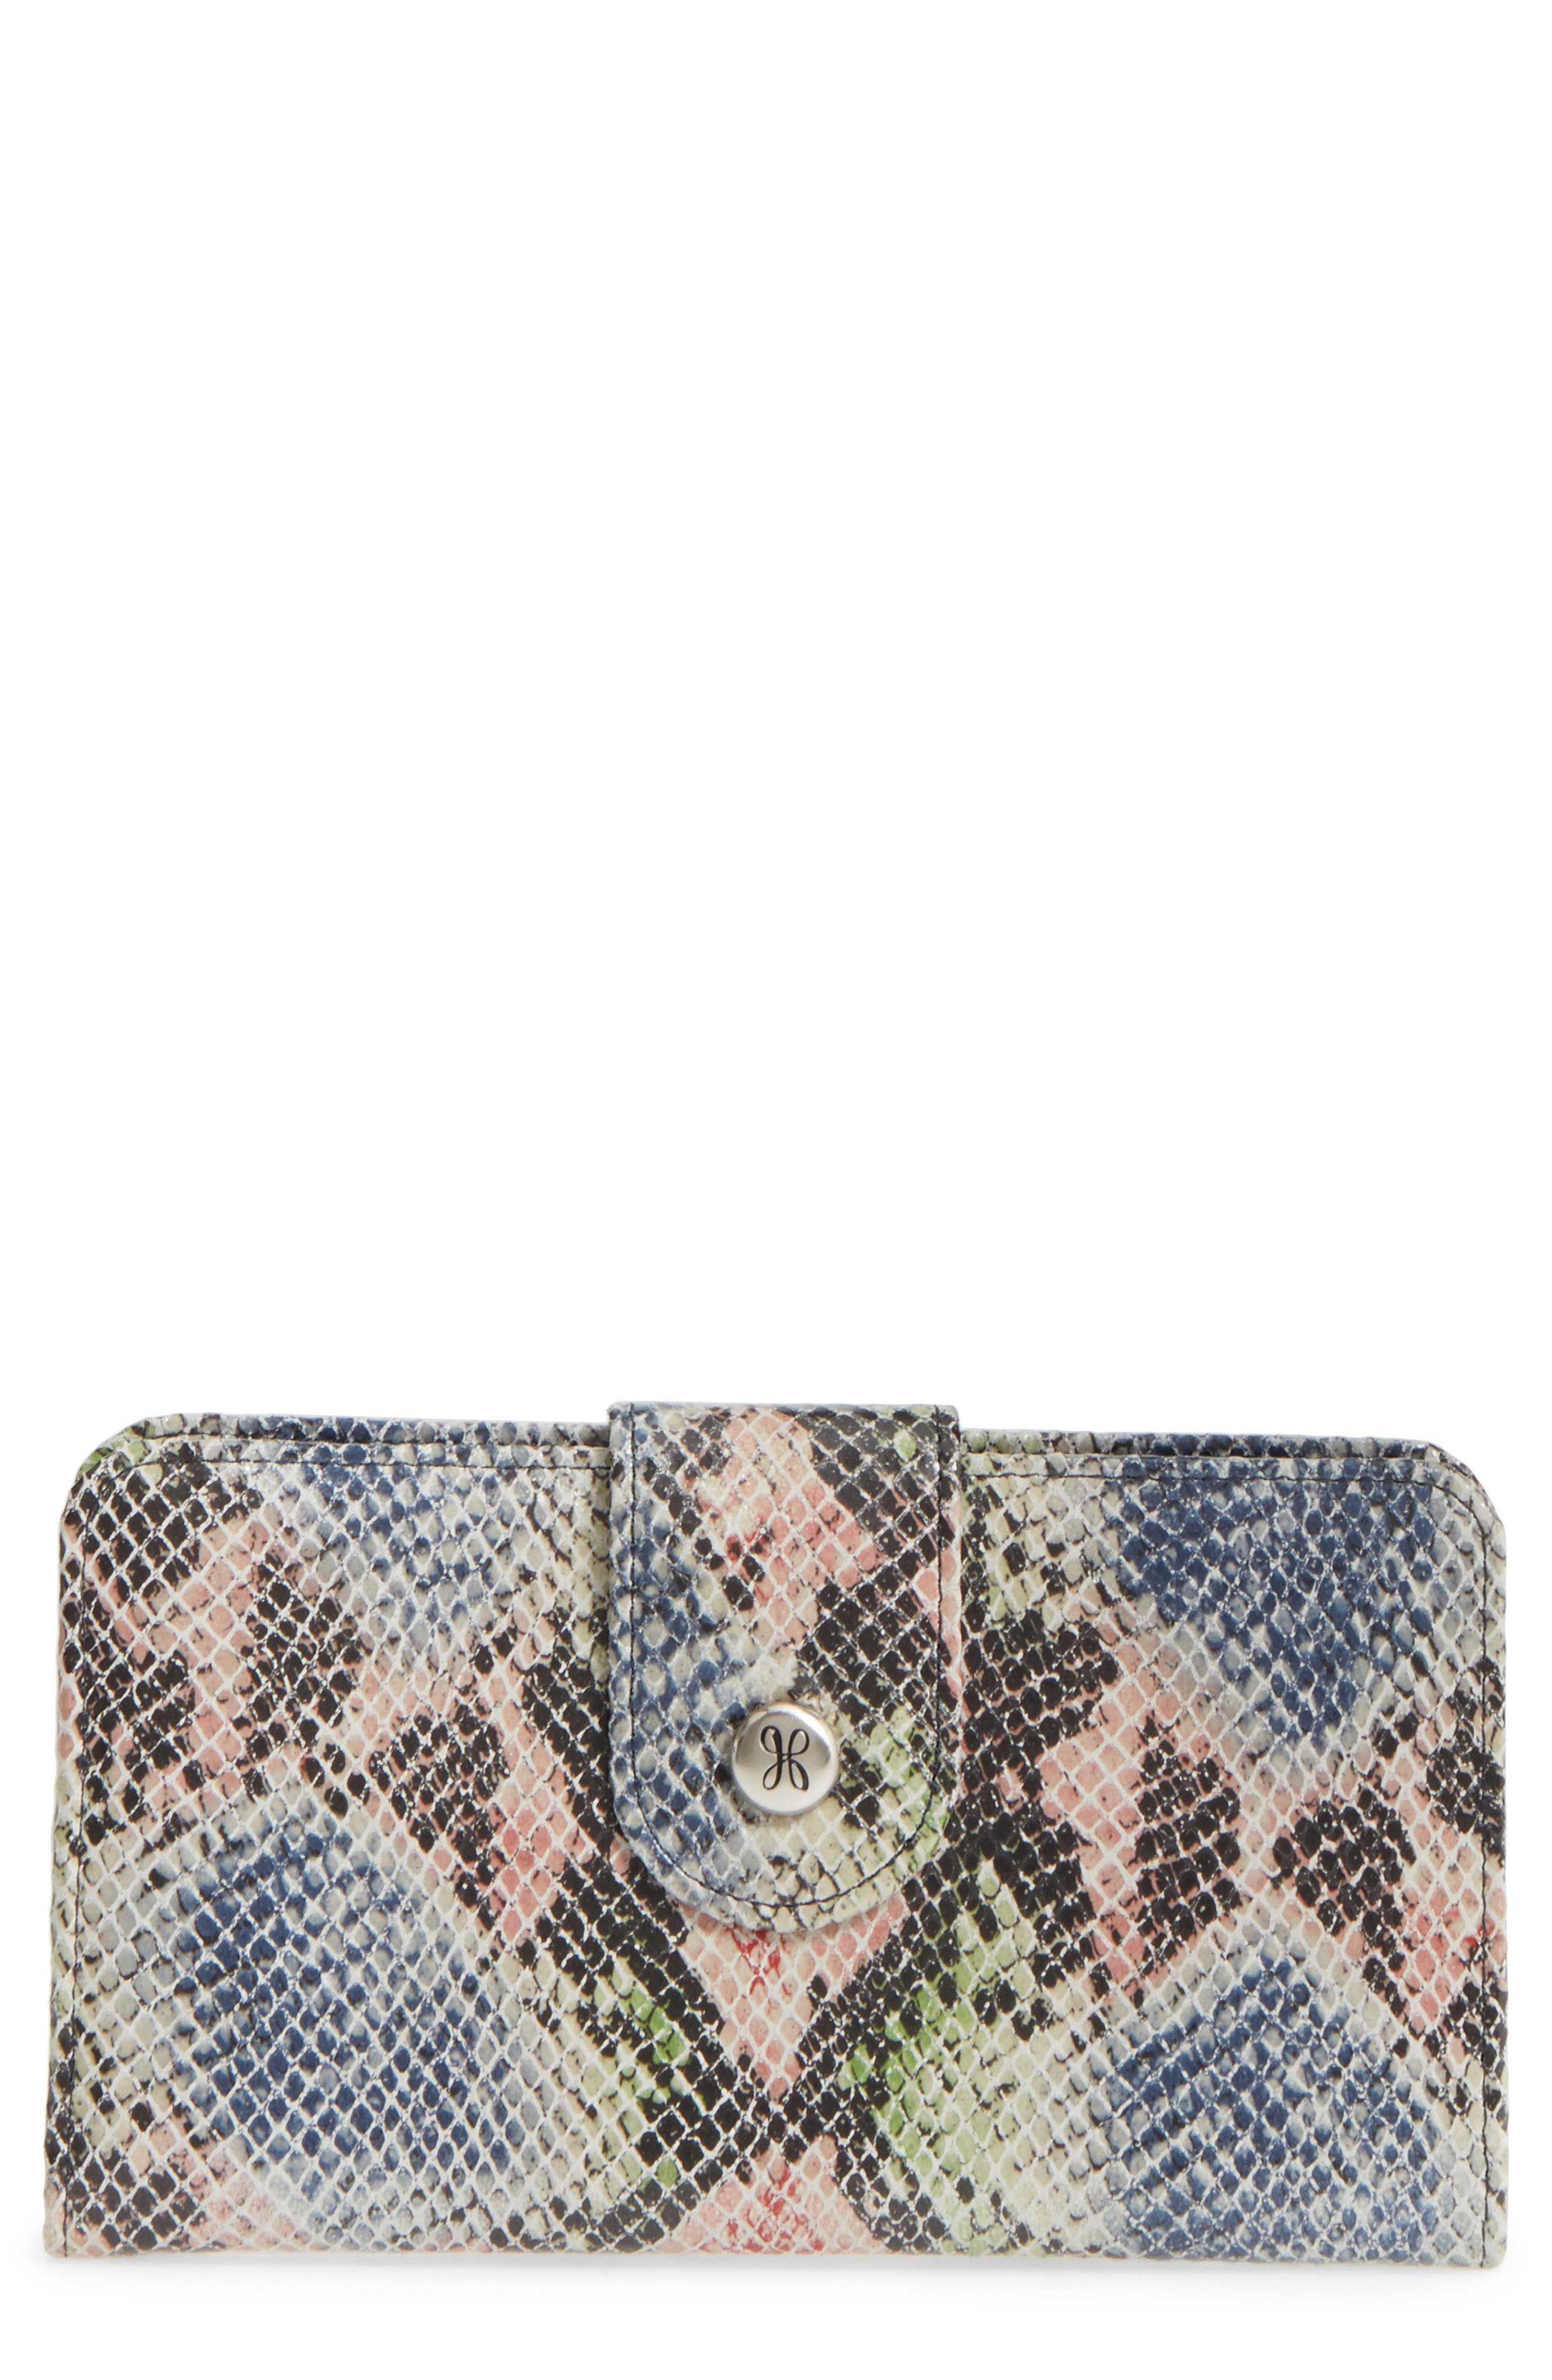 Main Image - Hobo 'Danette' Glazed Leather Continental Wallet